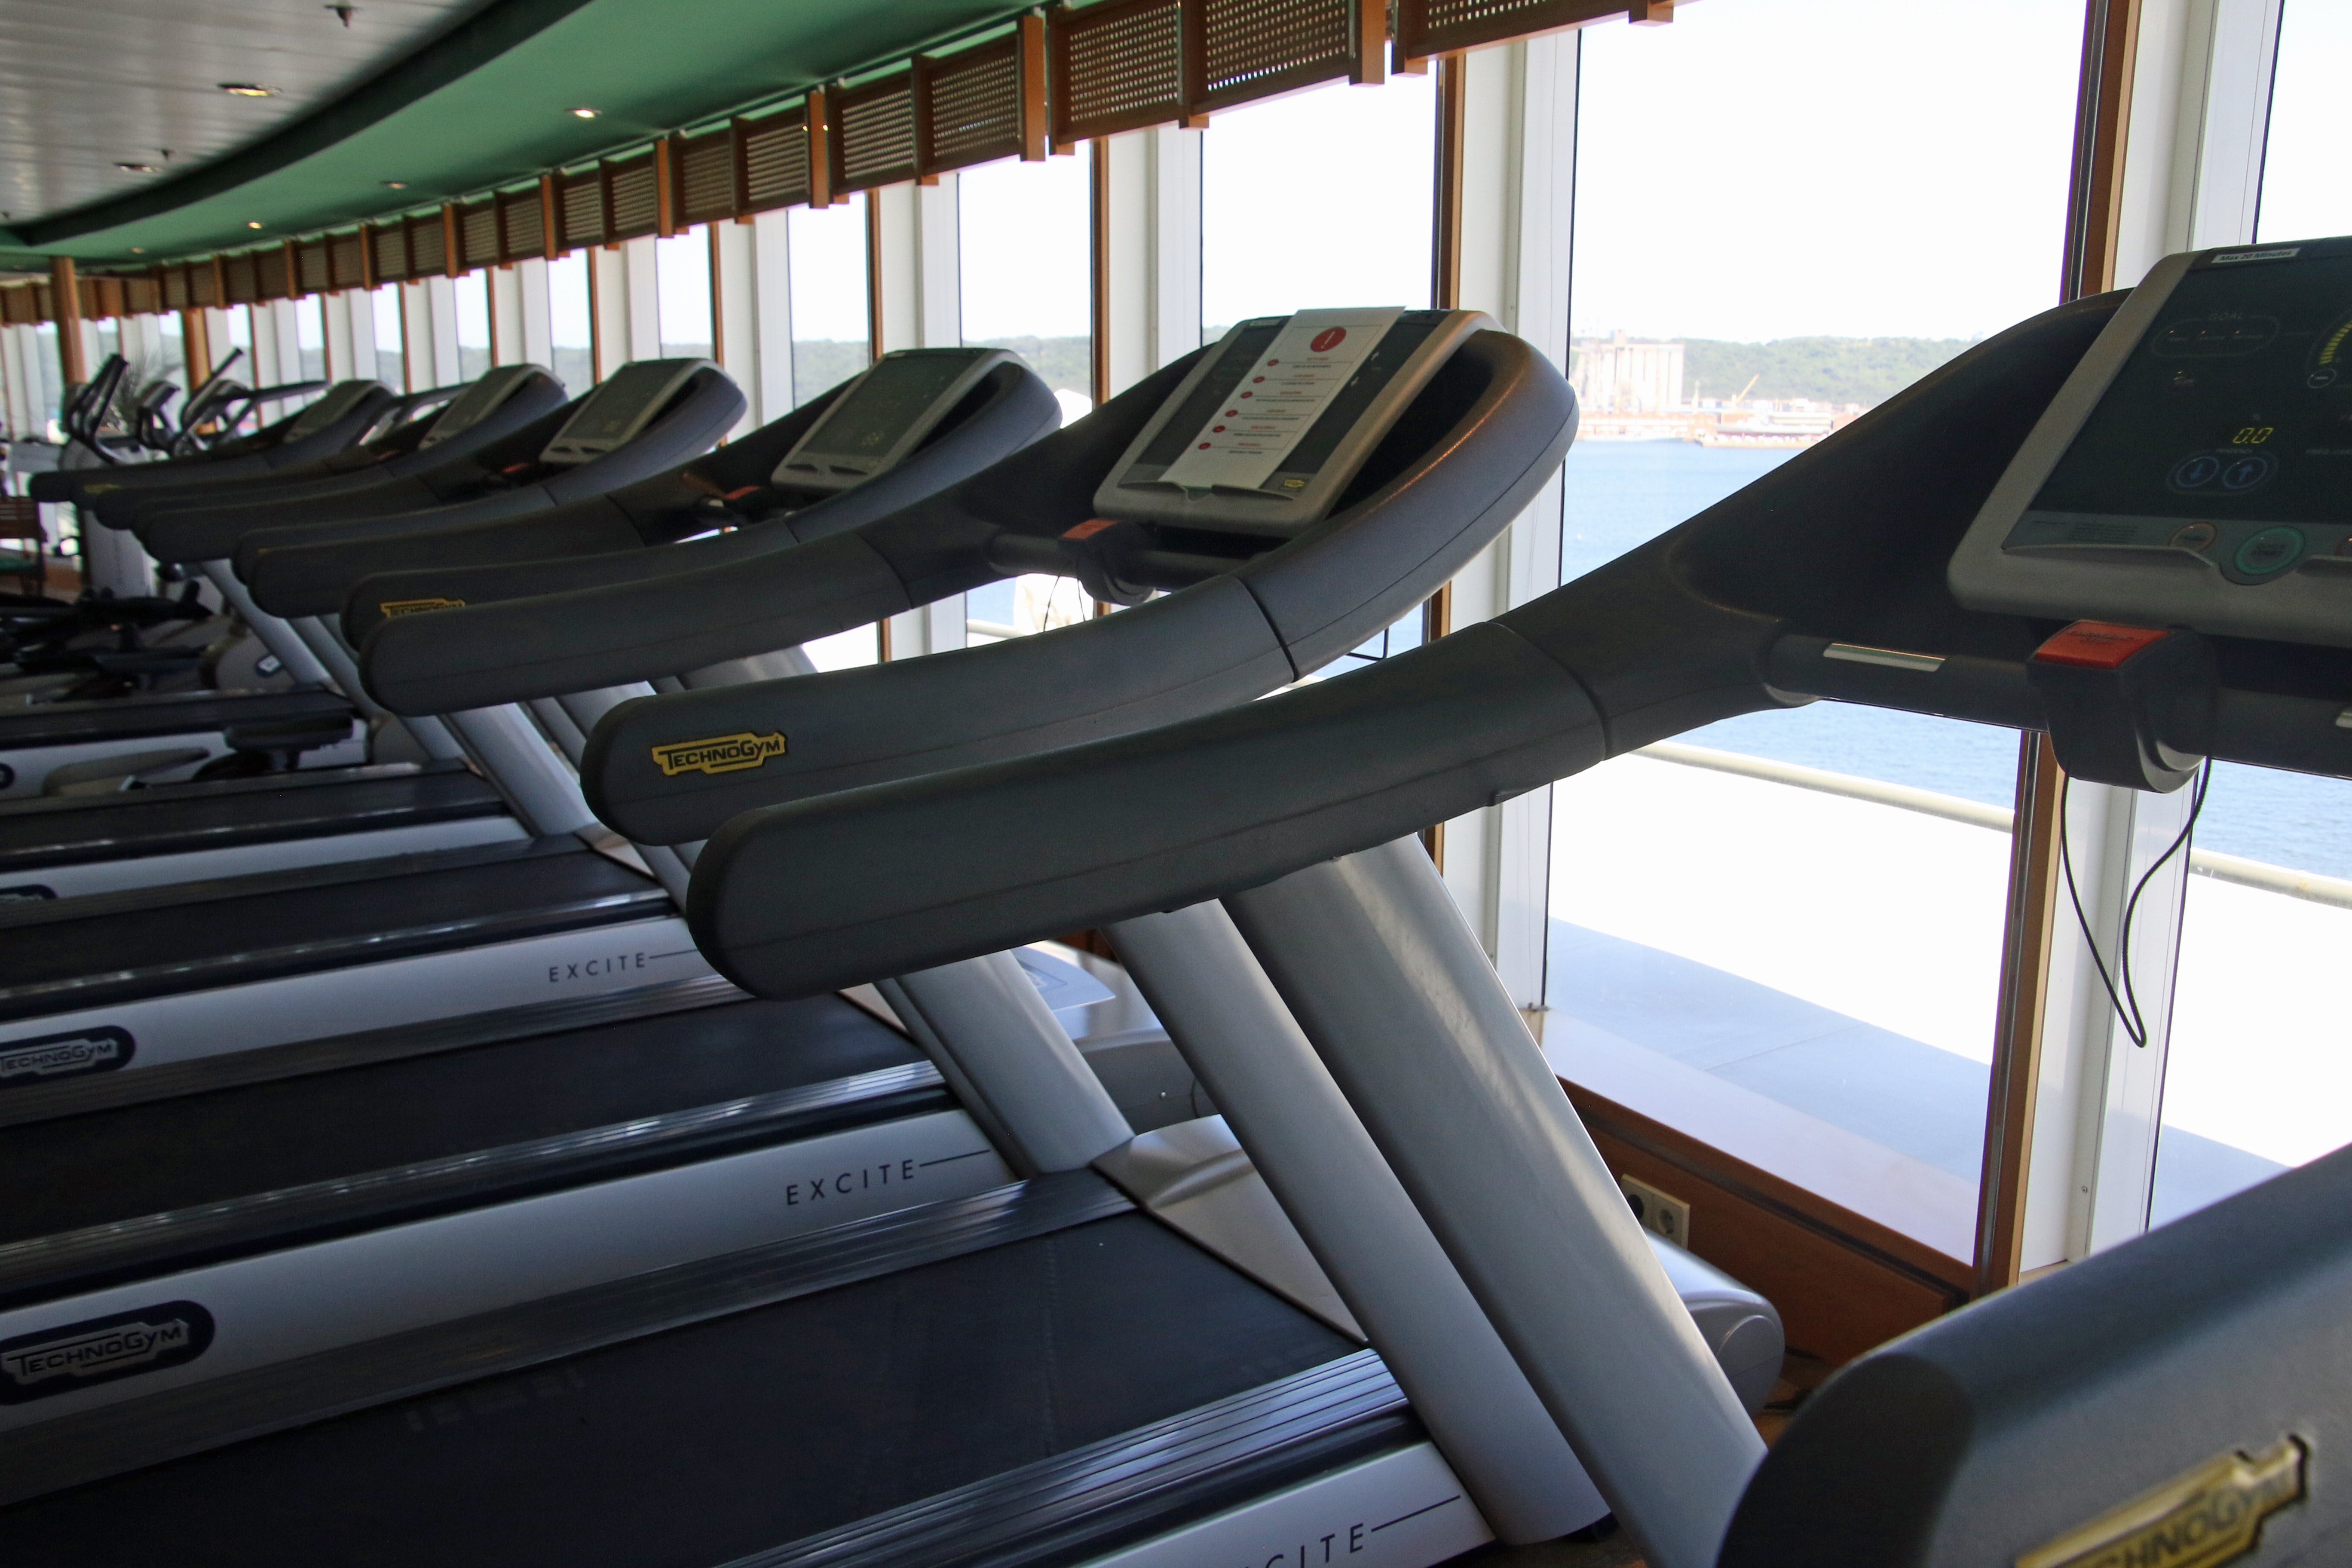 several treadmill machines facing the window in the gym